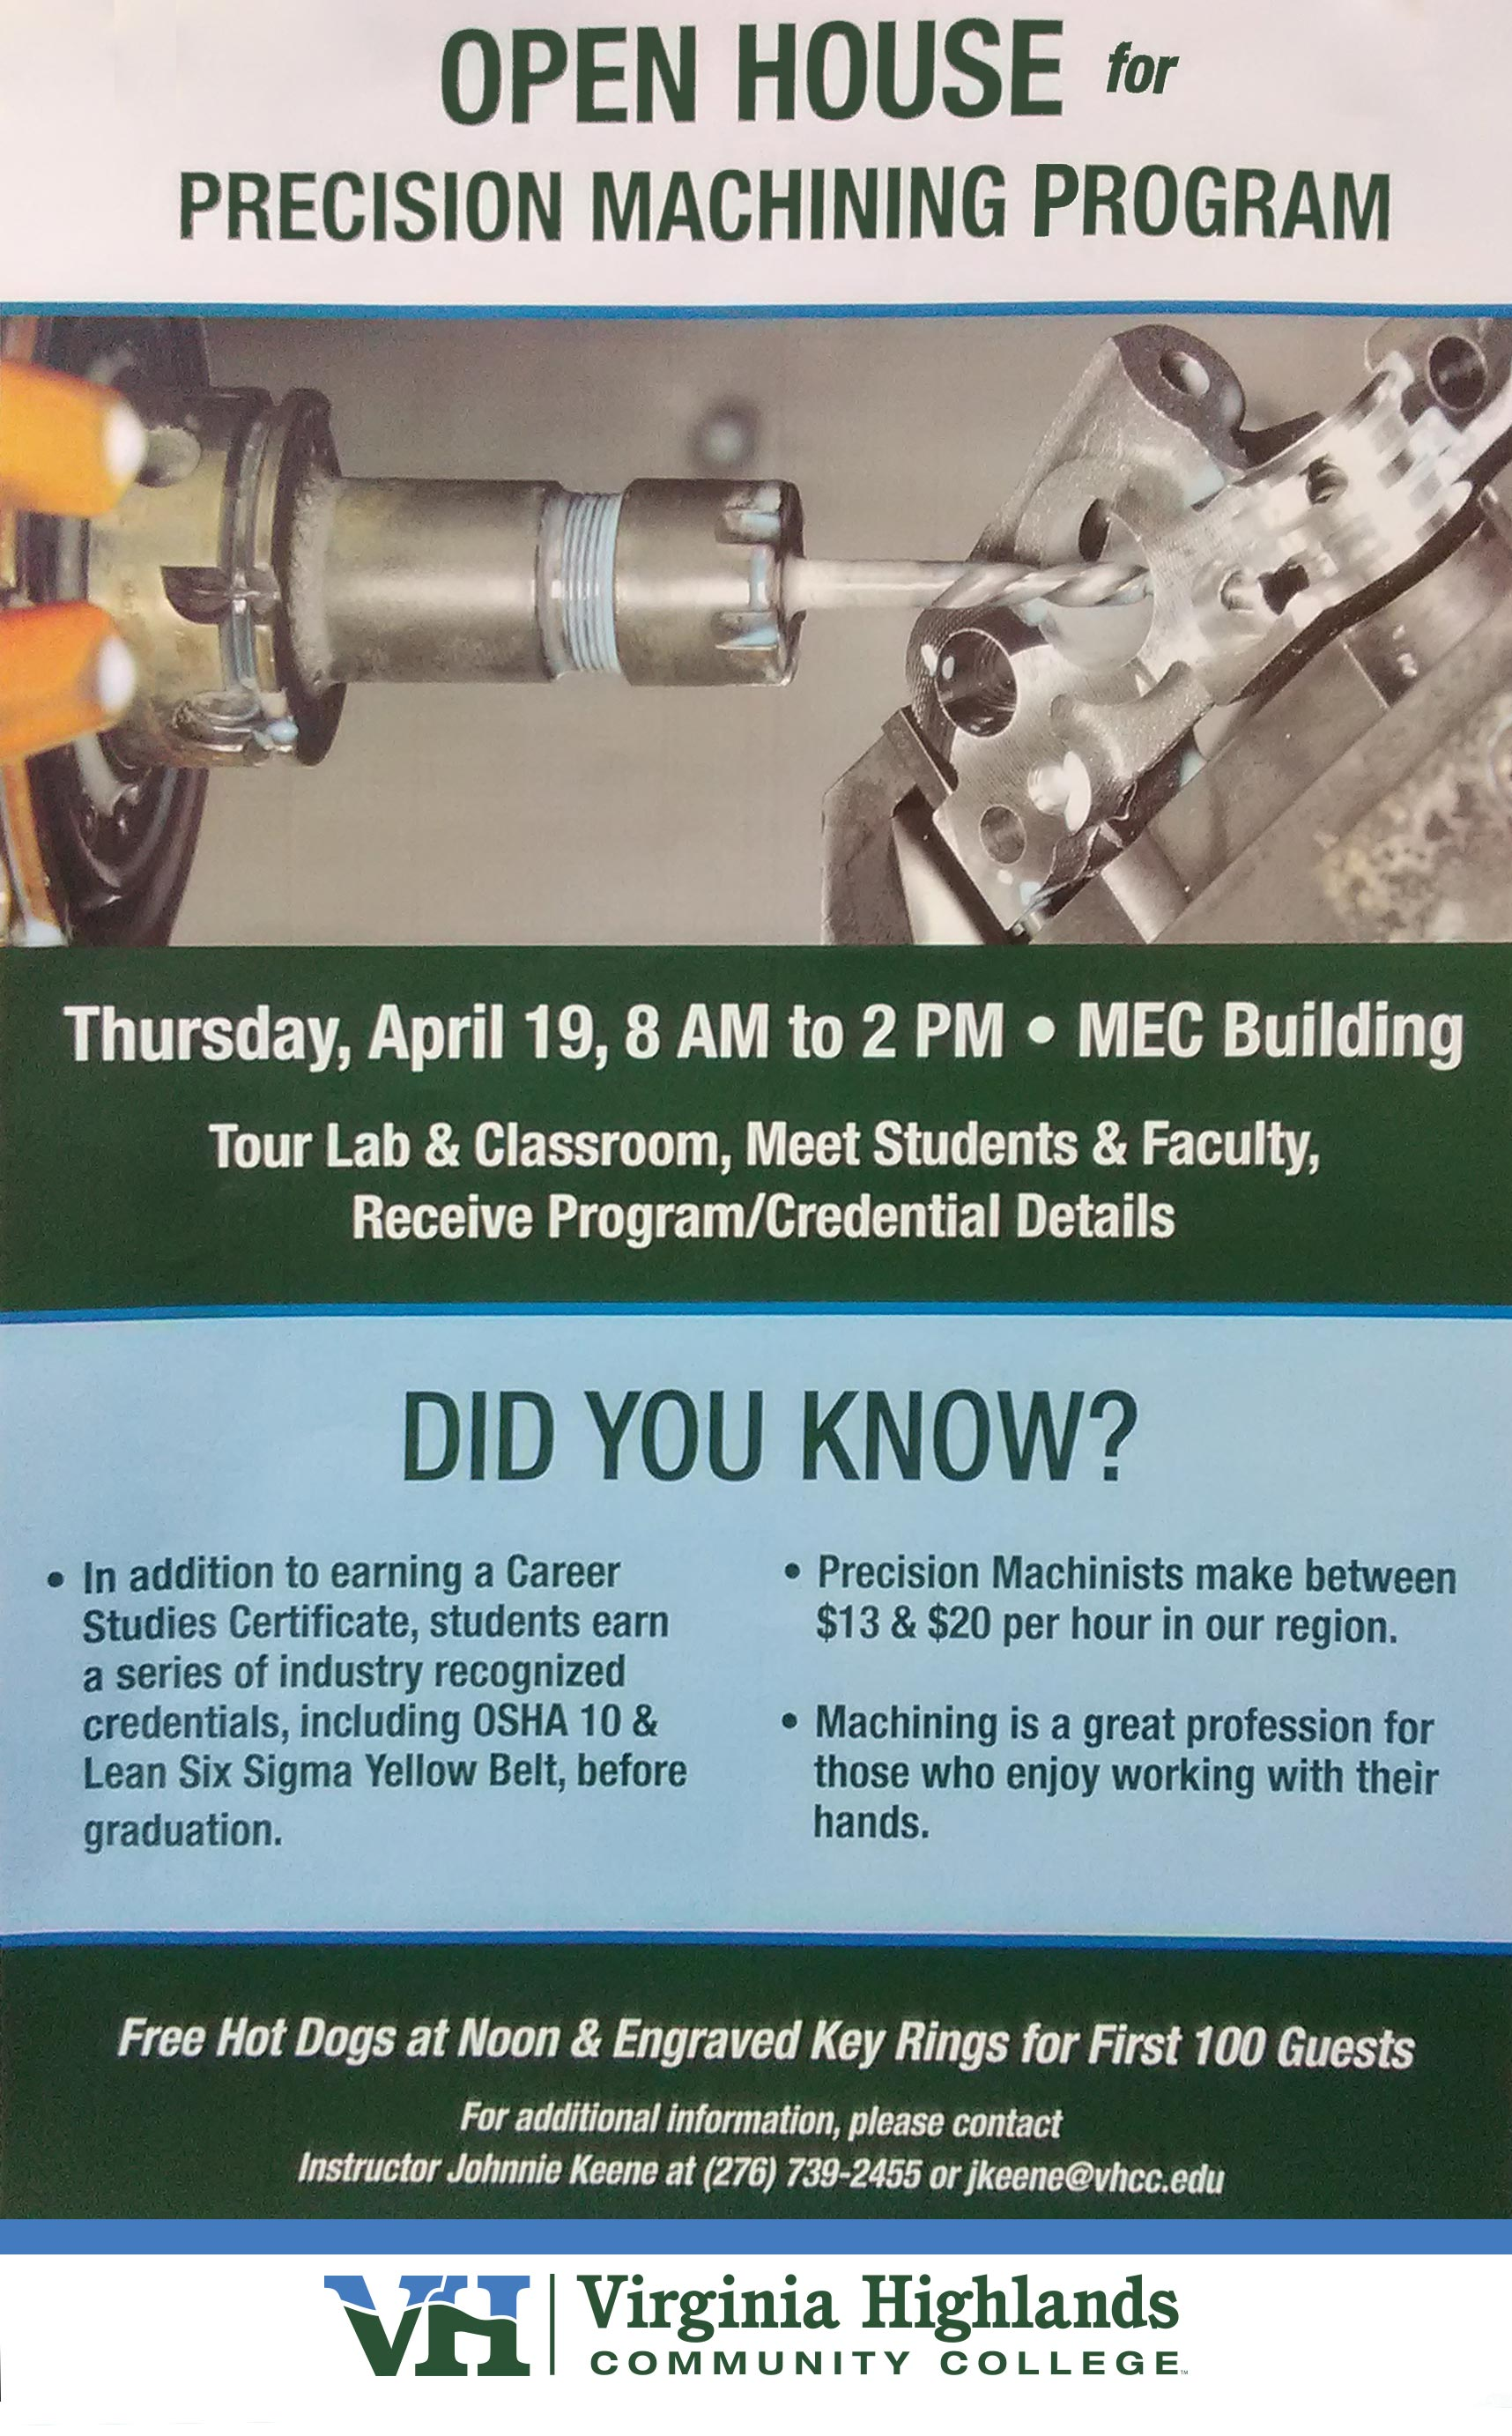 VHCC Precision Machining Program Open House